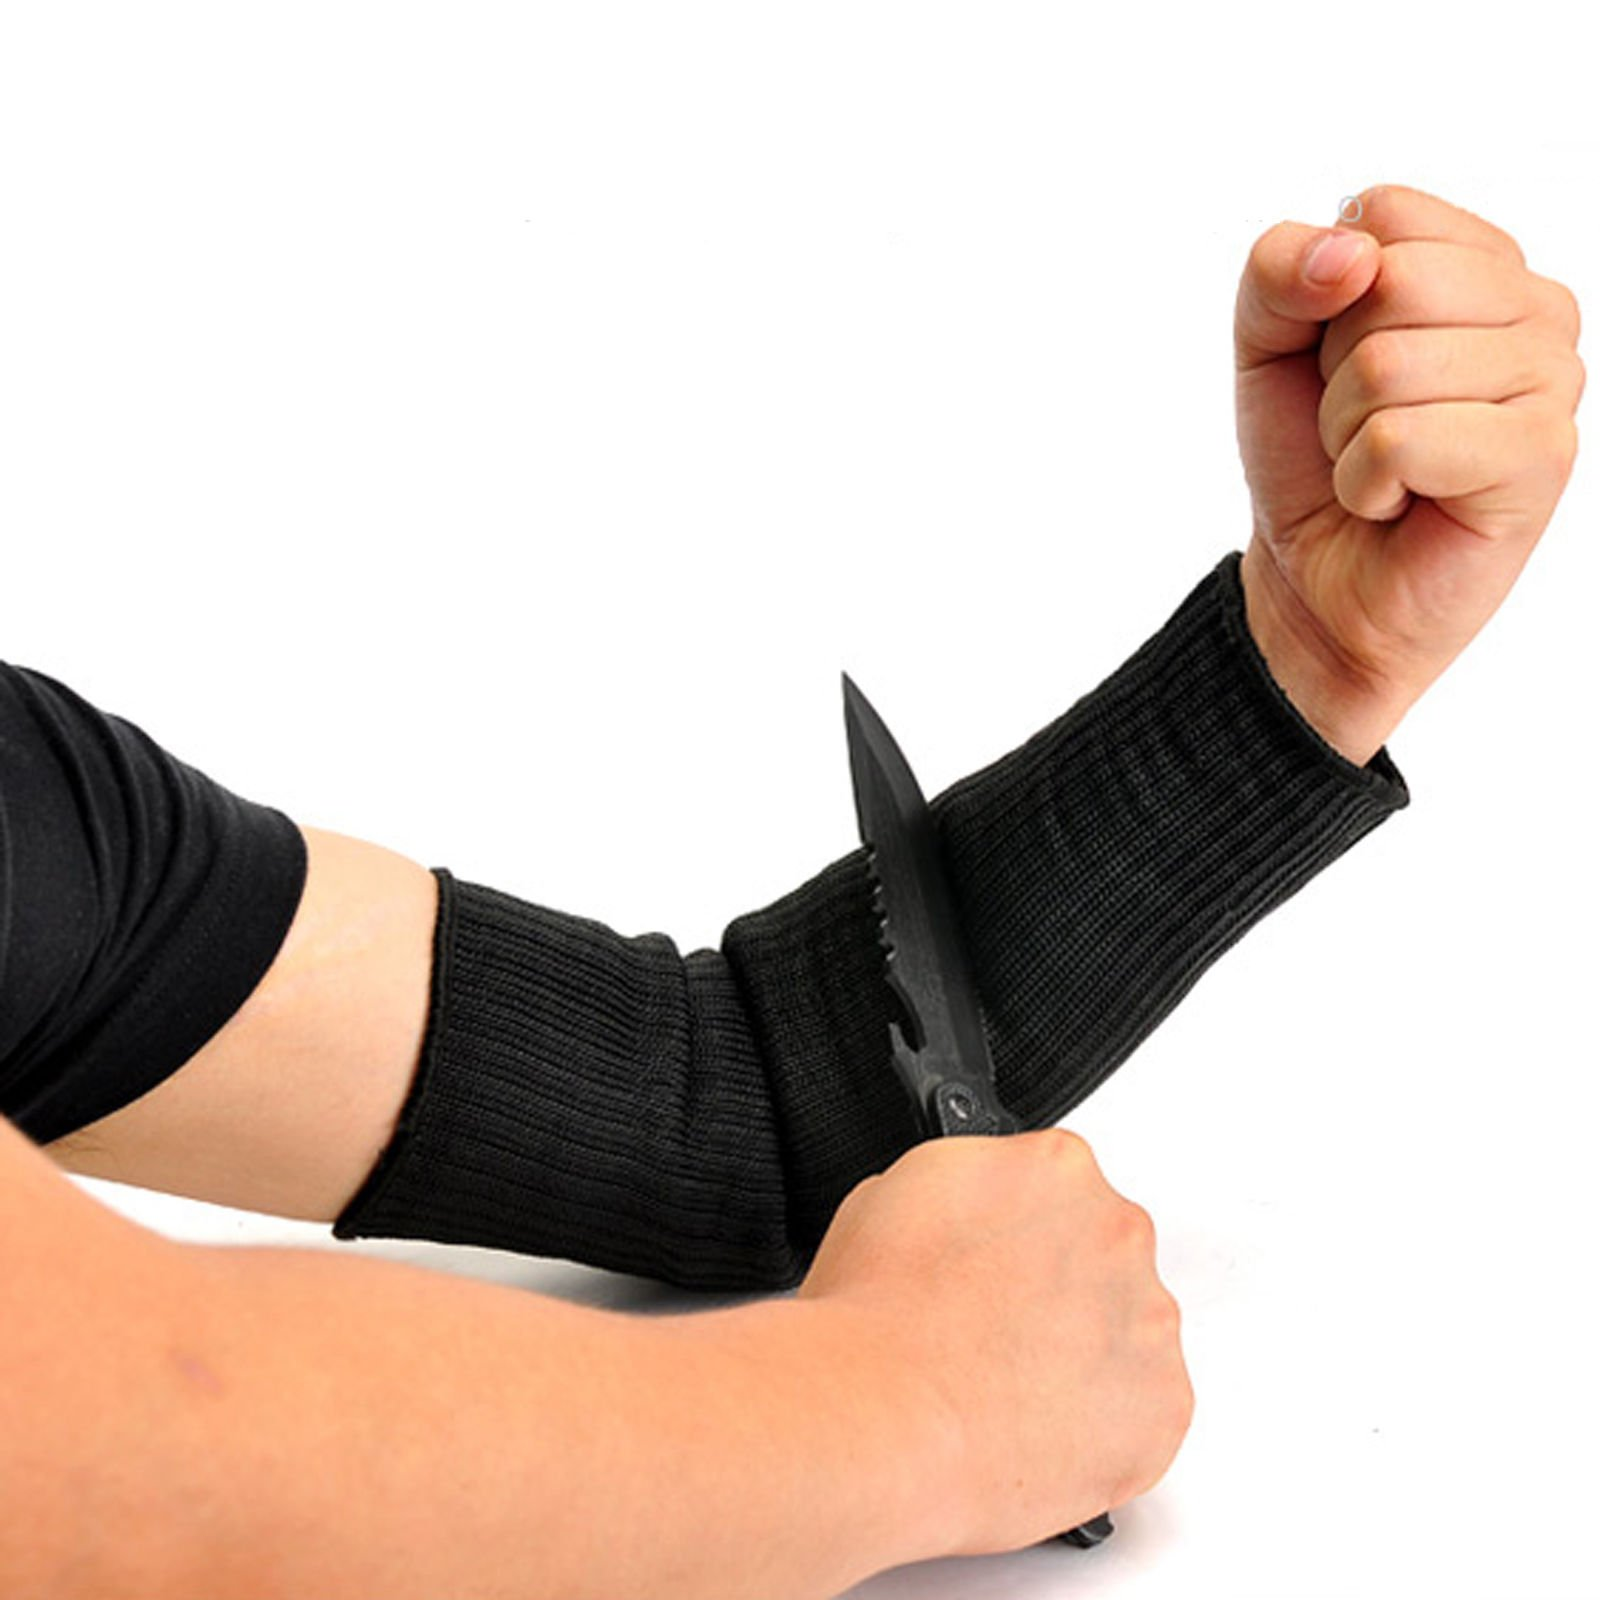 Yosoo Steel Wire Arm Guard Bracer Cut Proof Anti Abrasion Stab Resistant Armband Sleeve Vambraces Protector